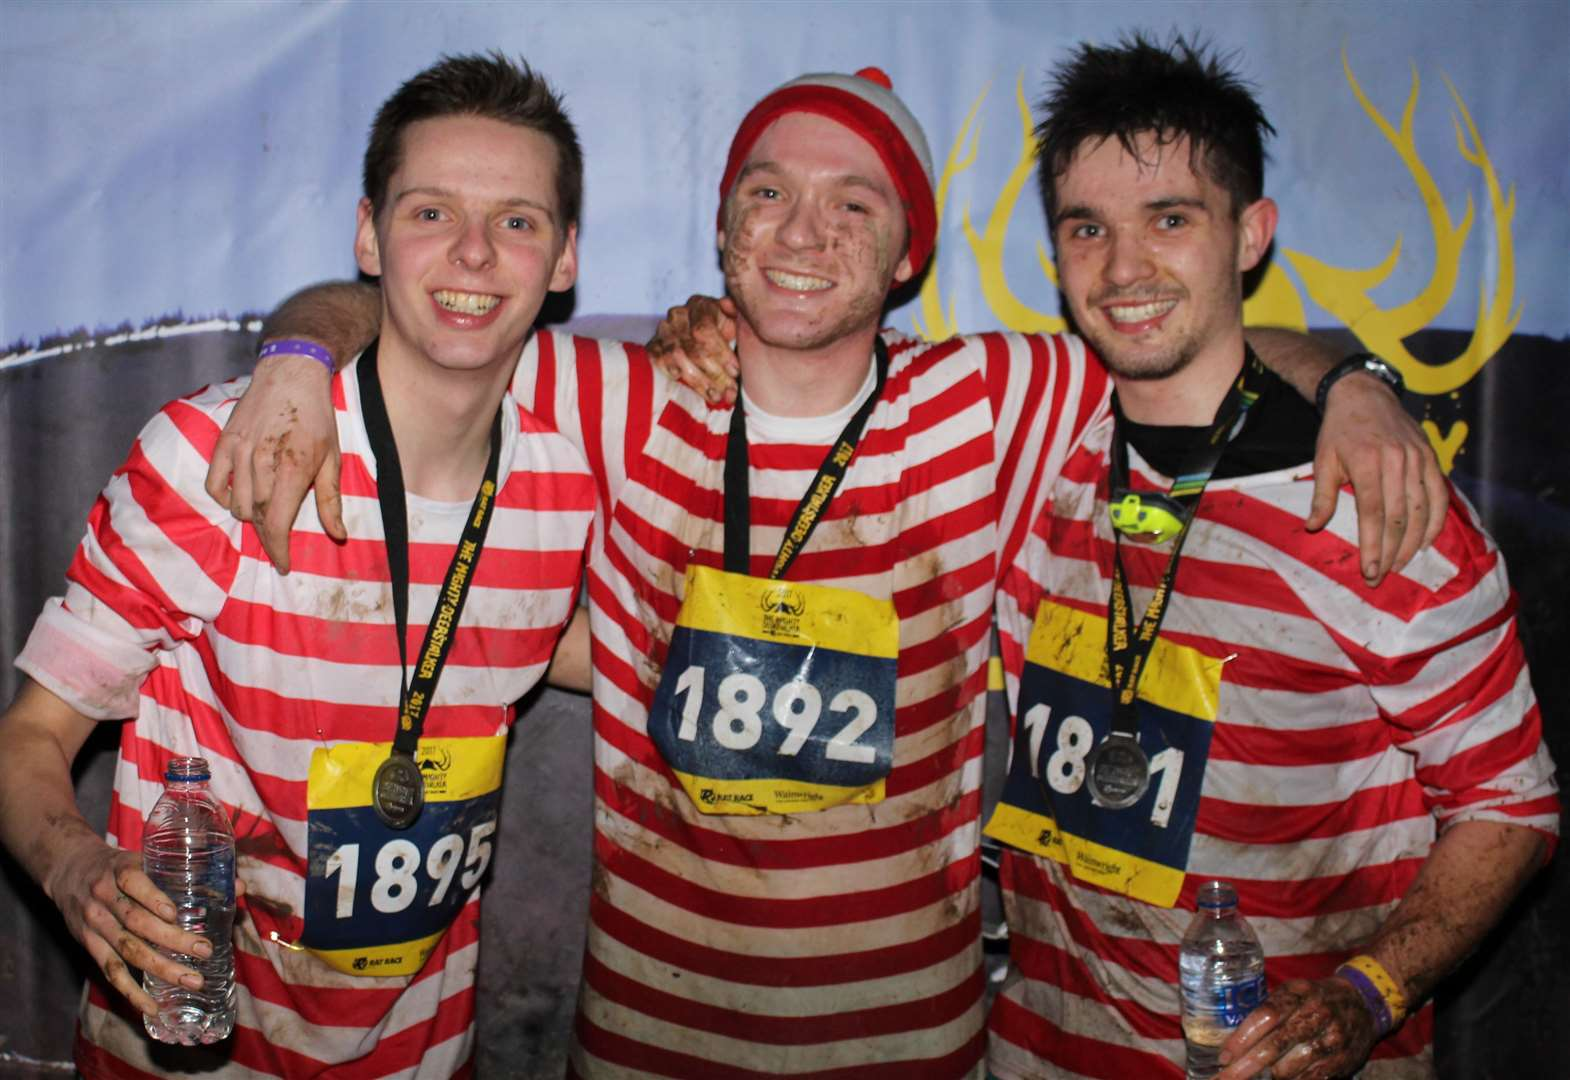 Brothers will be powering on in latest Mighty Deerstalker fundraiser